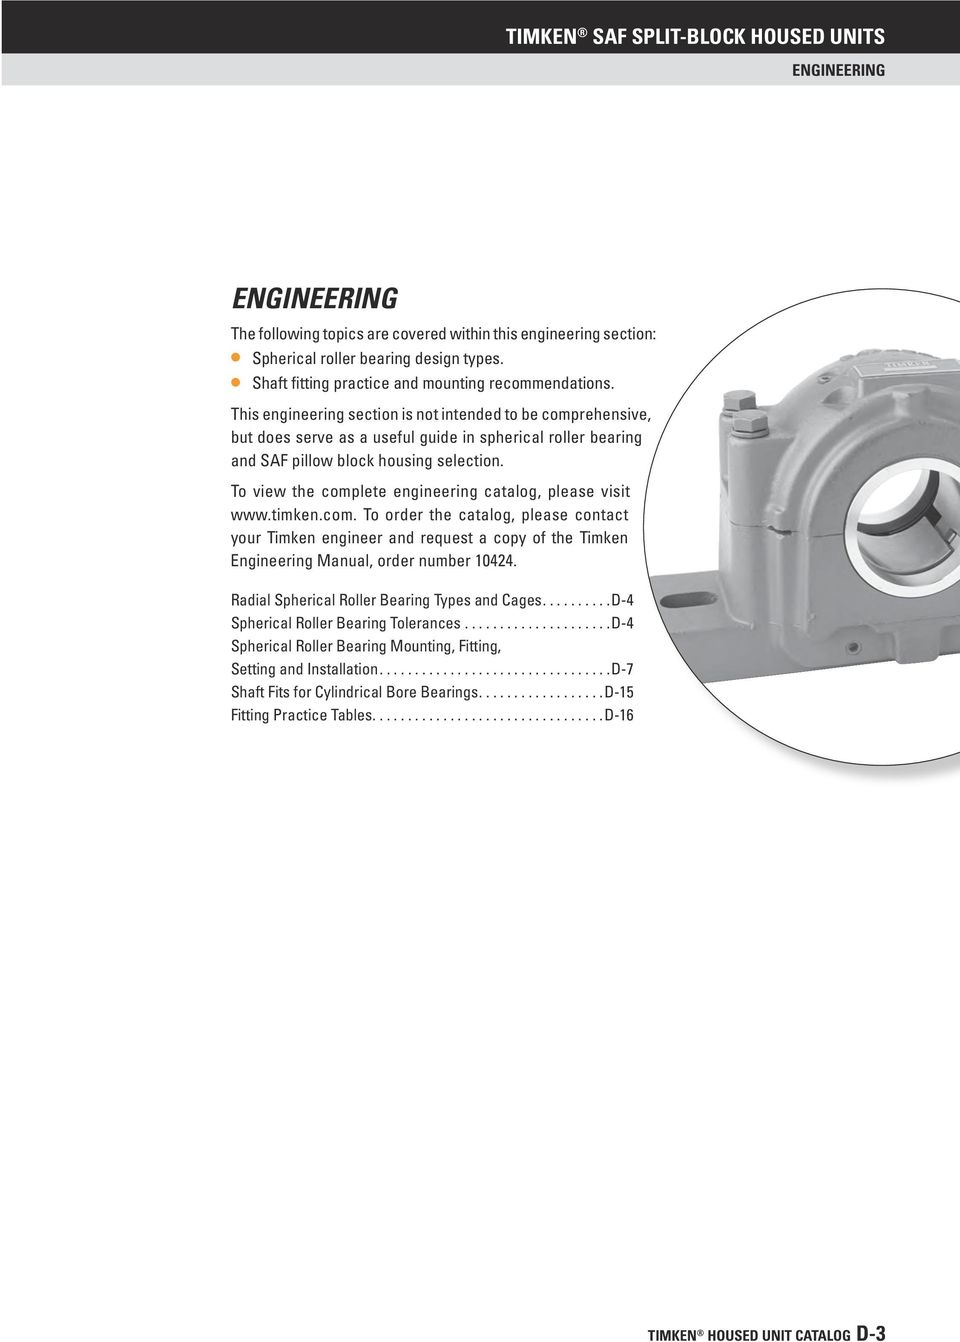 To view the complete engineering catalog, please visit www.timken.com. To order the catalog, please contact your Timken engineer and request a copy of the Timken Engineering Manual, order number 10424.